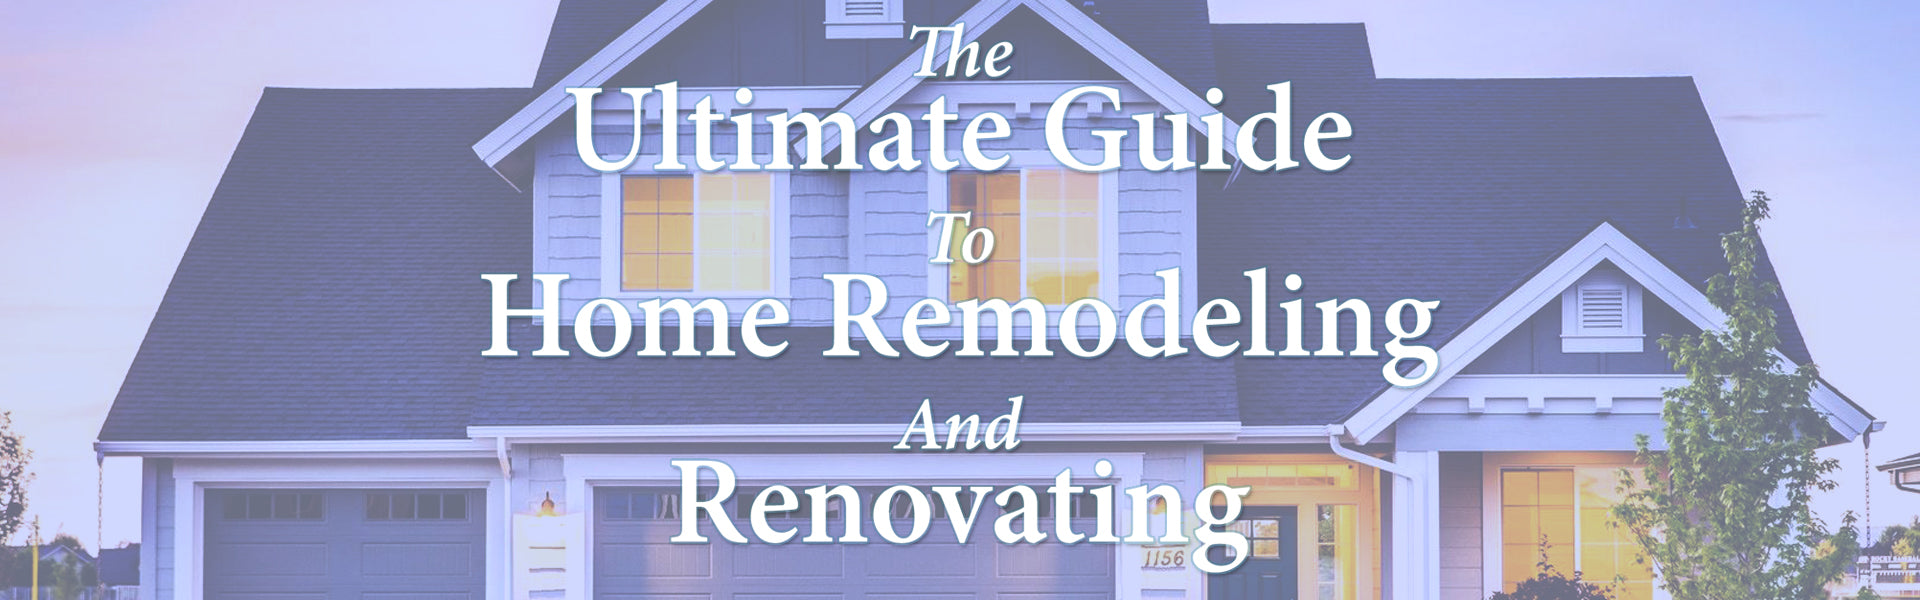 The Ultimate Guide to Home Remodeling and Renovation